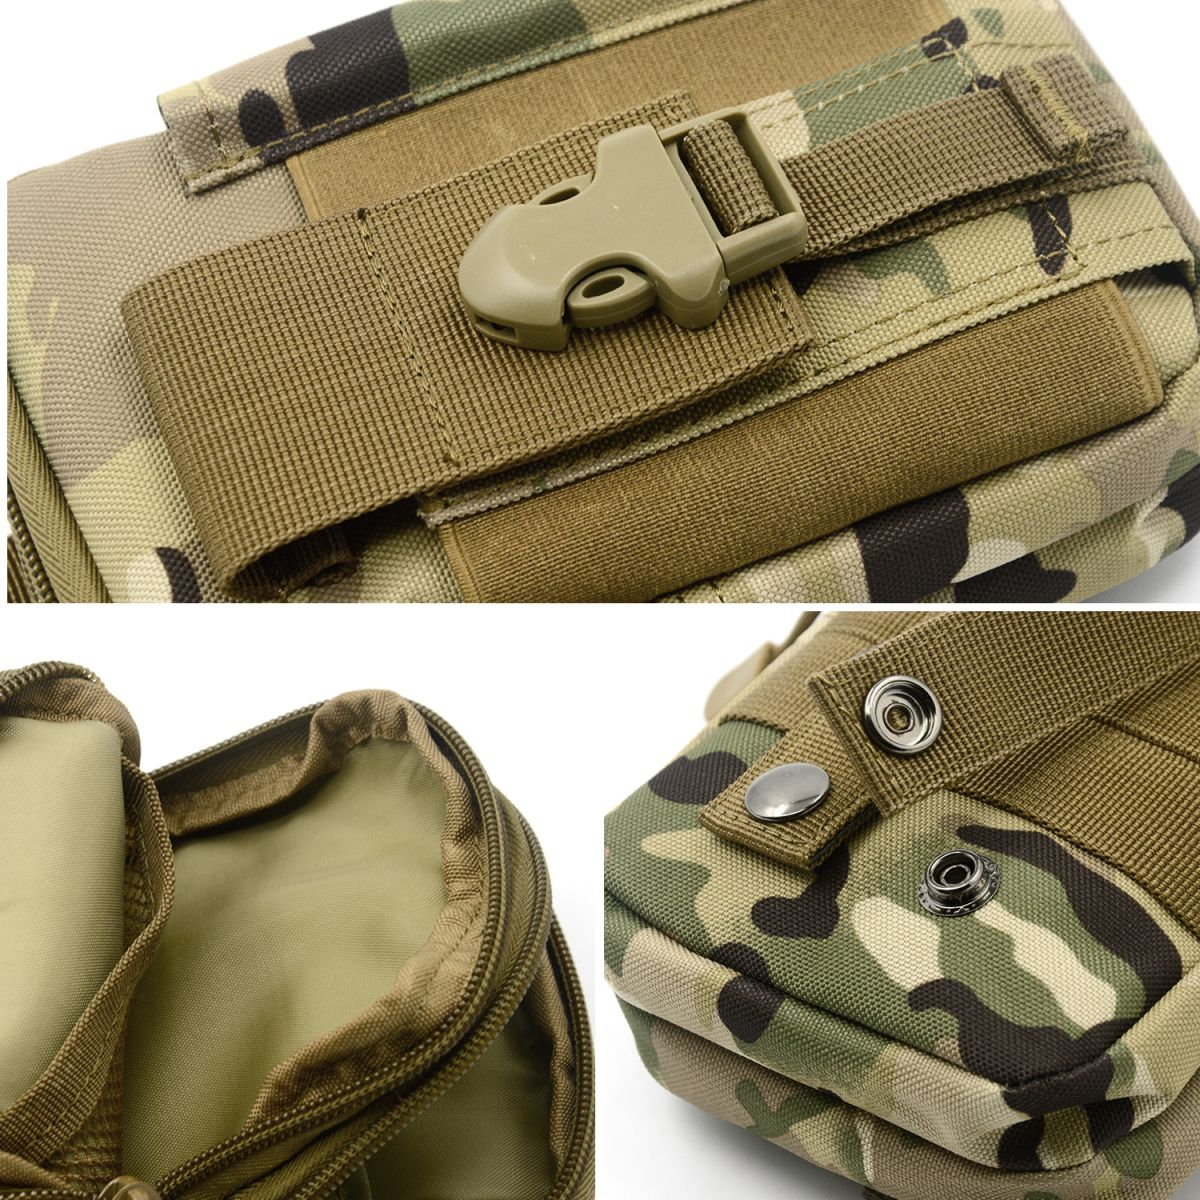 Overview of Tas Pinggang Tactical Army Camouflage - ZSXD001